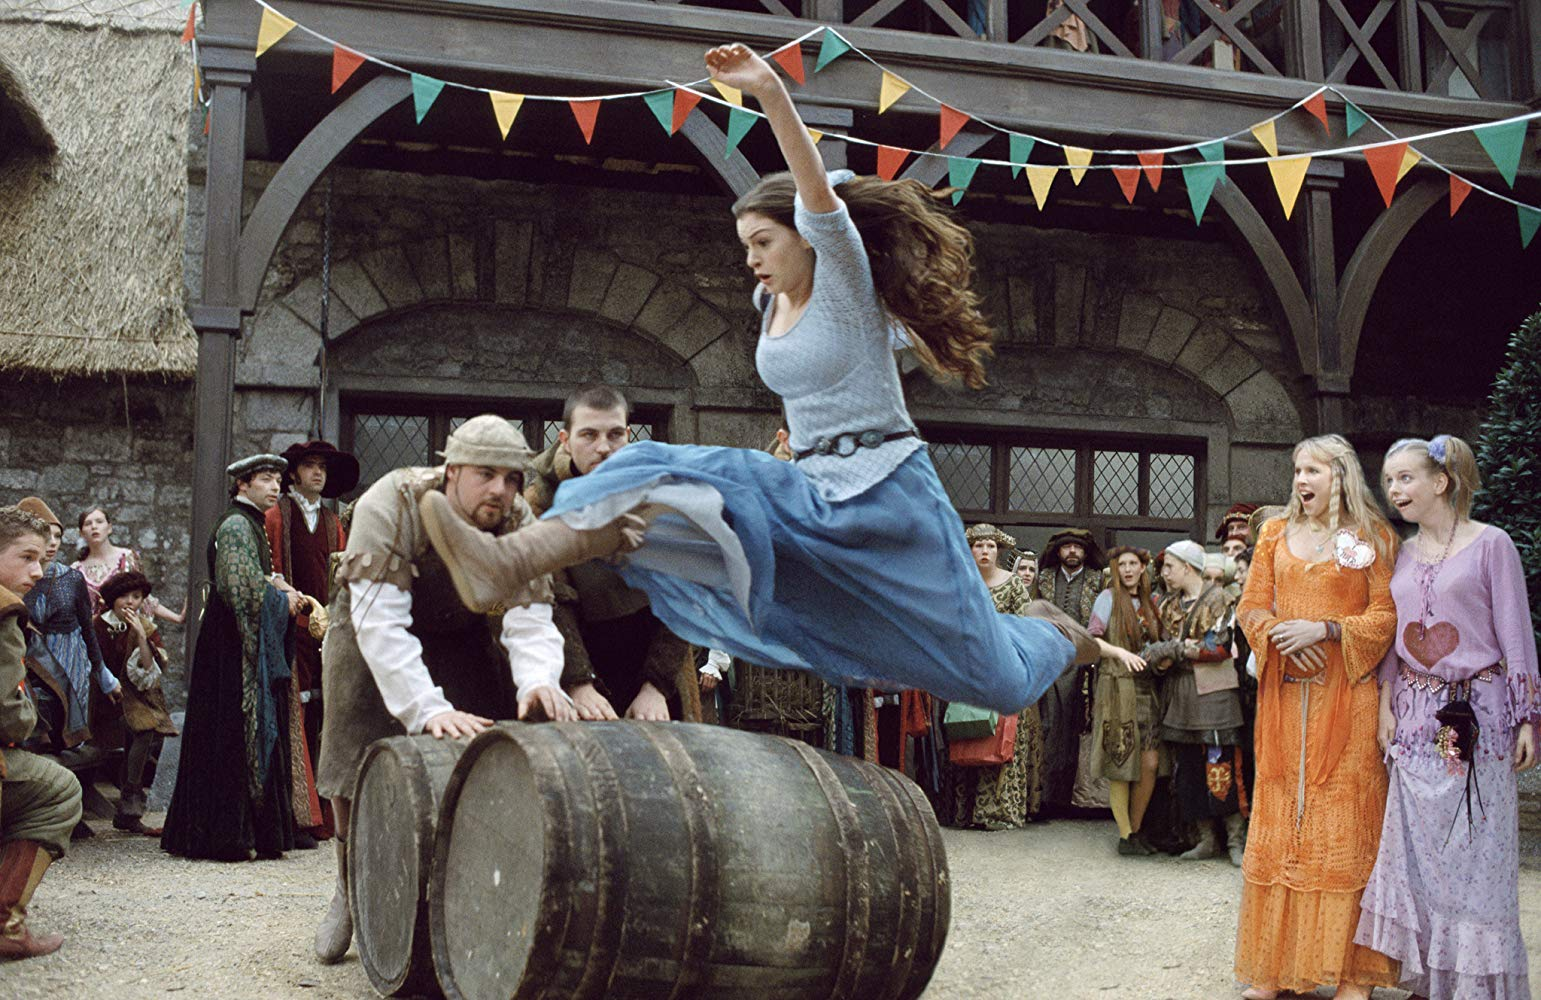 Ella Enchanted 2004 Anne Hathaway jumping